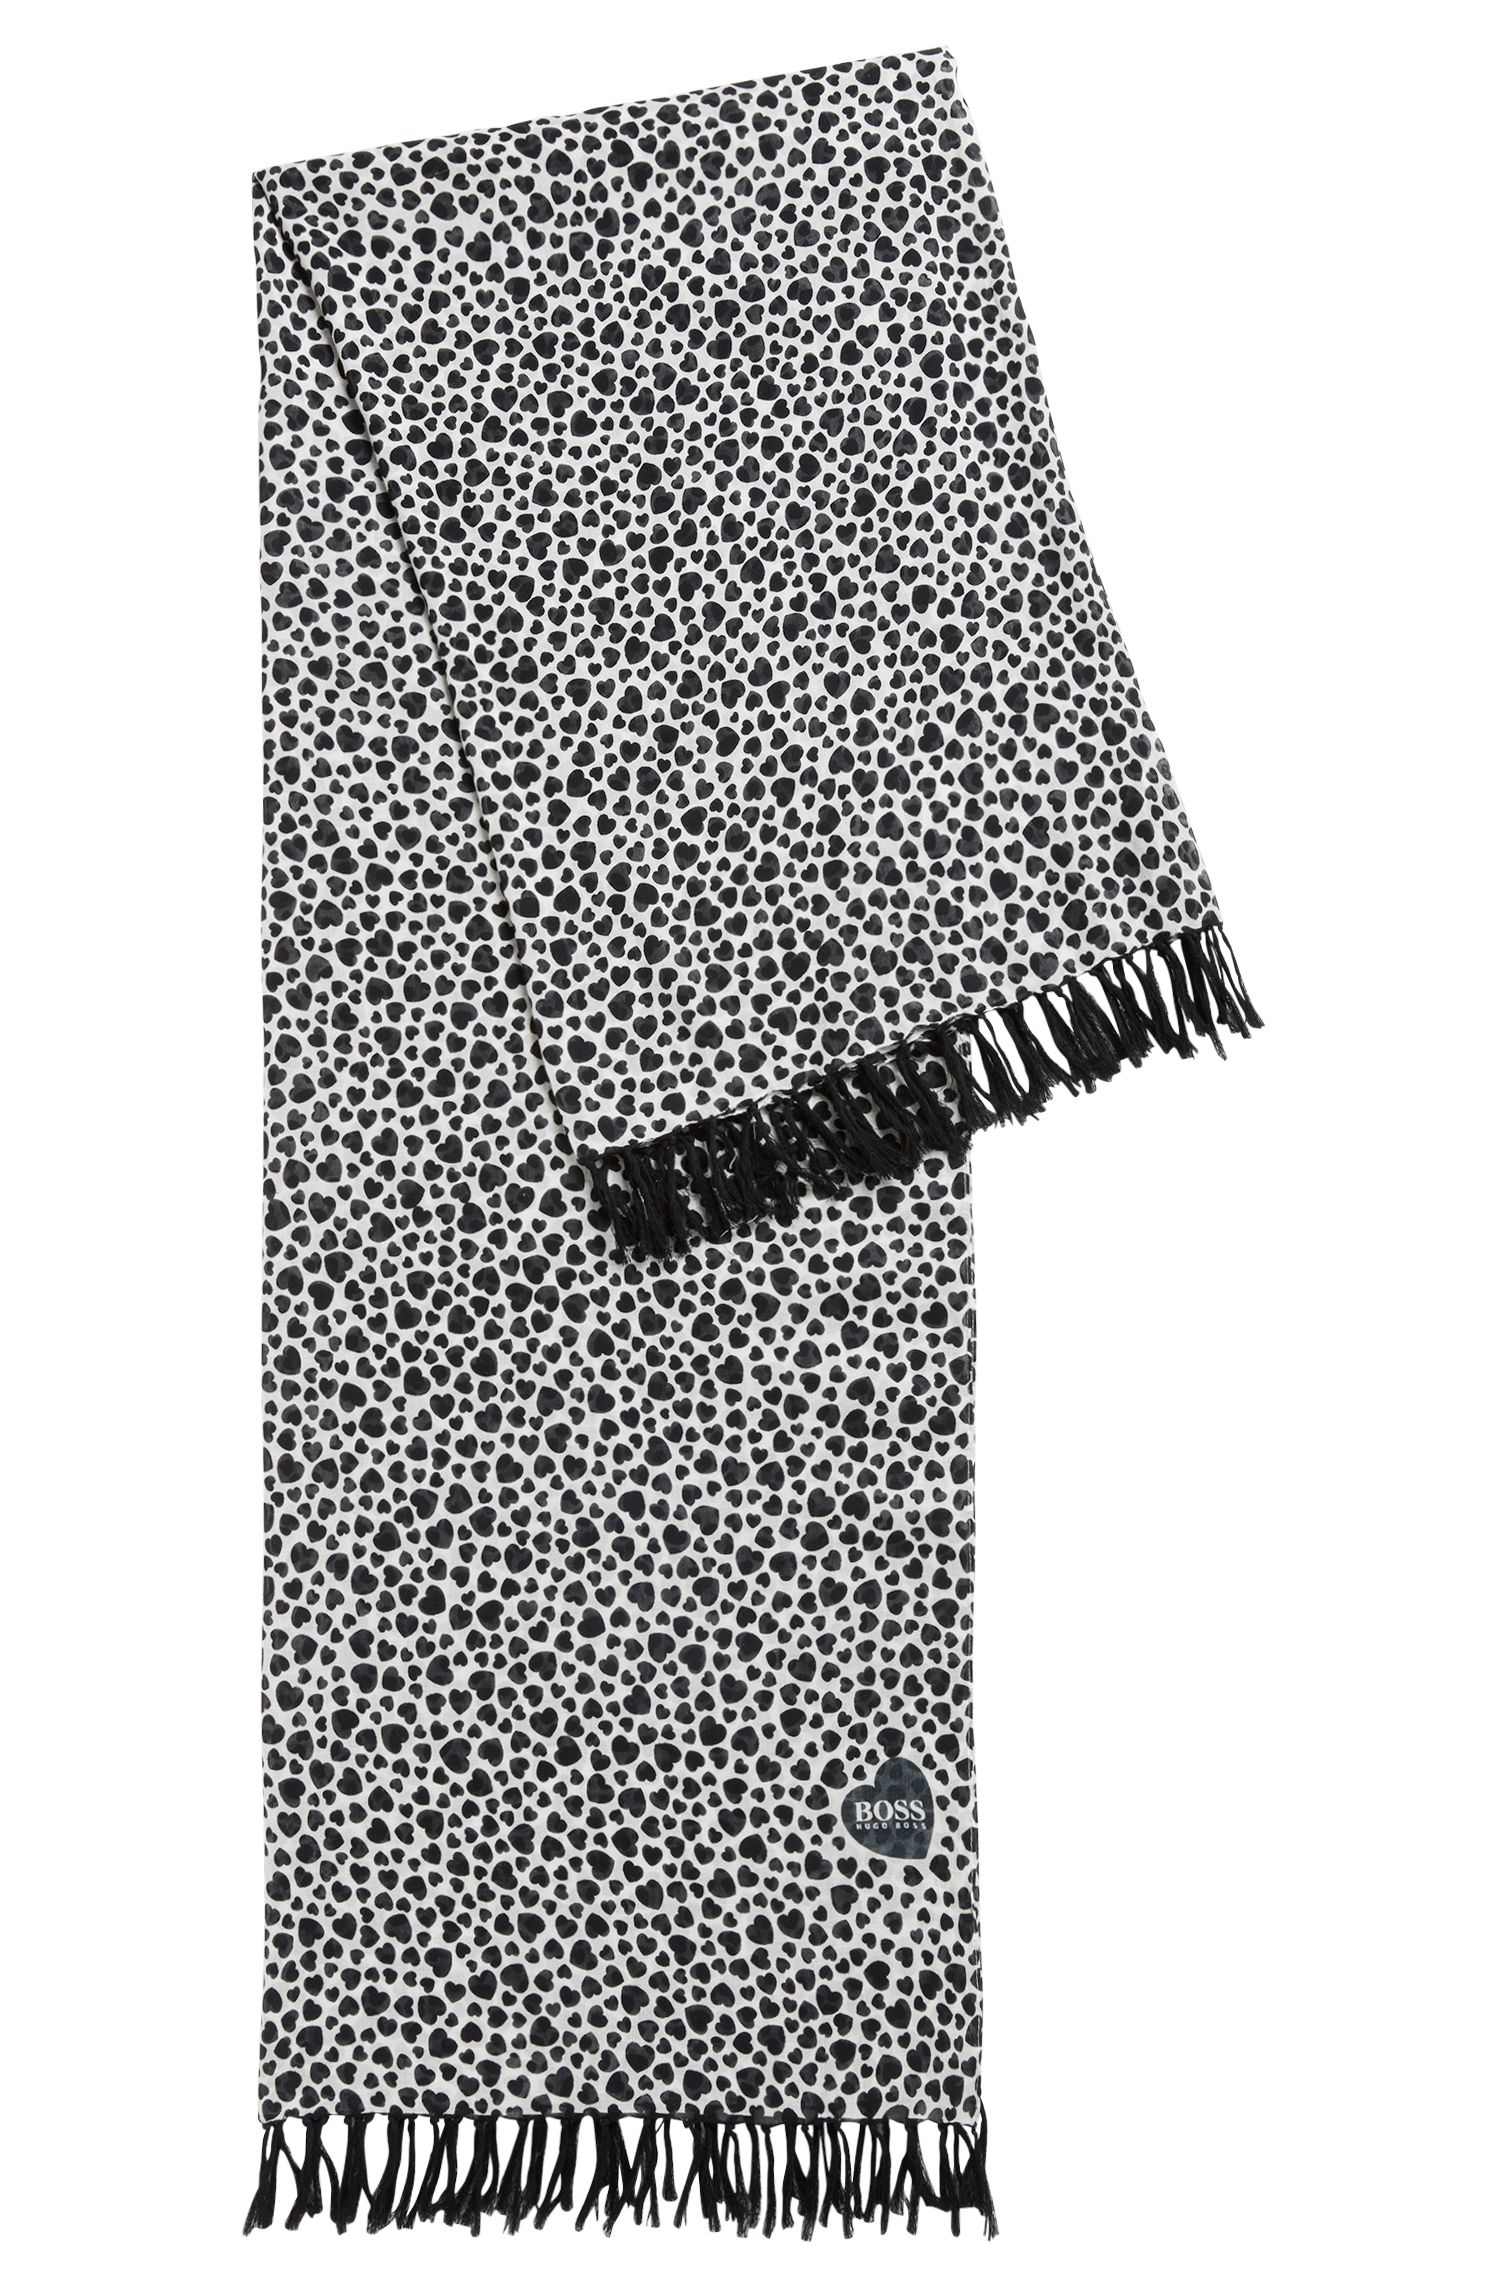 Heart-print scarf in a cotton blend with fringing, Patterned